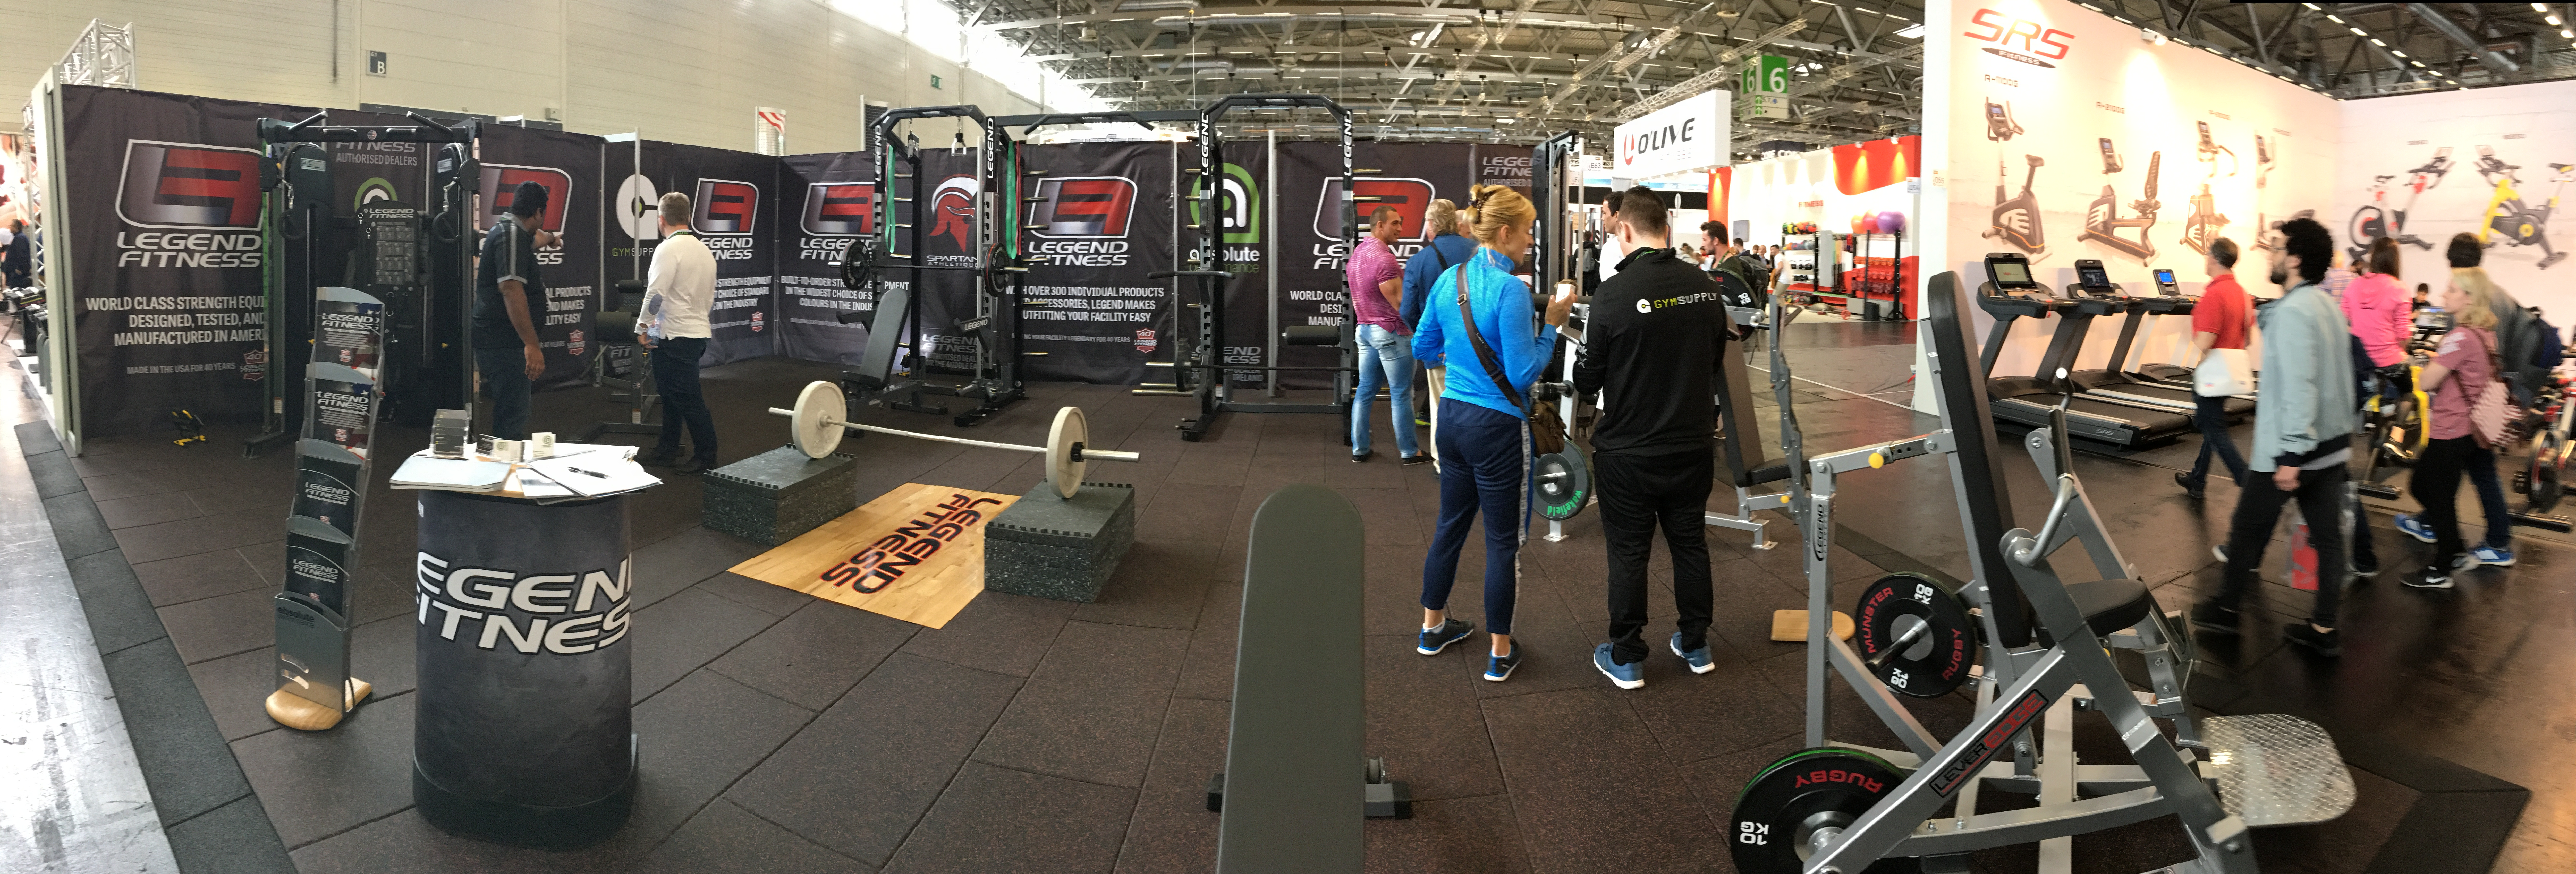 FIBO is the biggest fitness convention in the world.